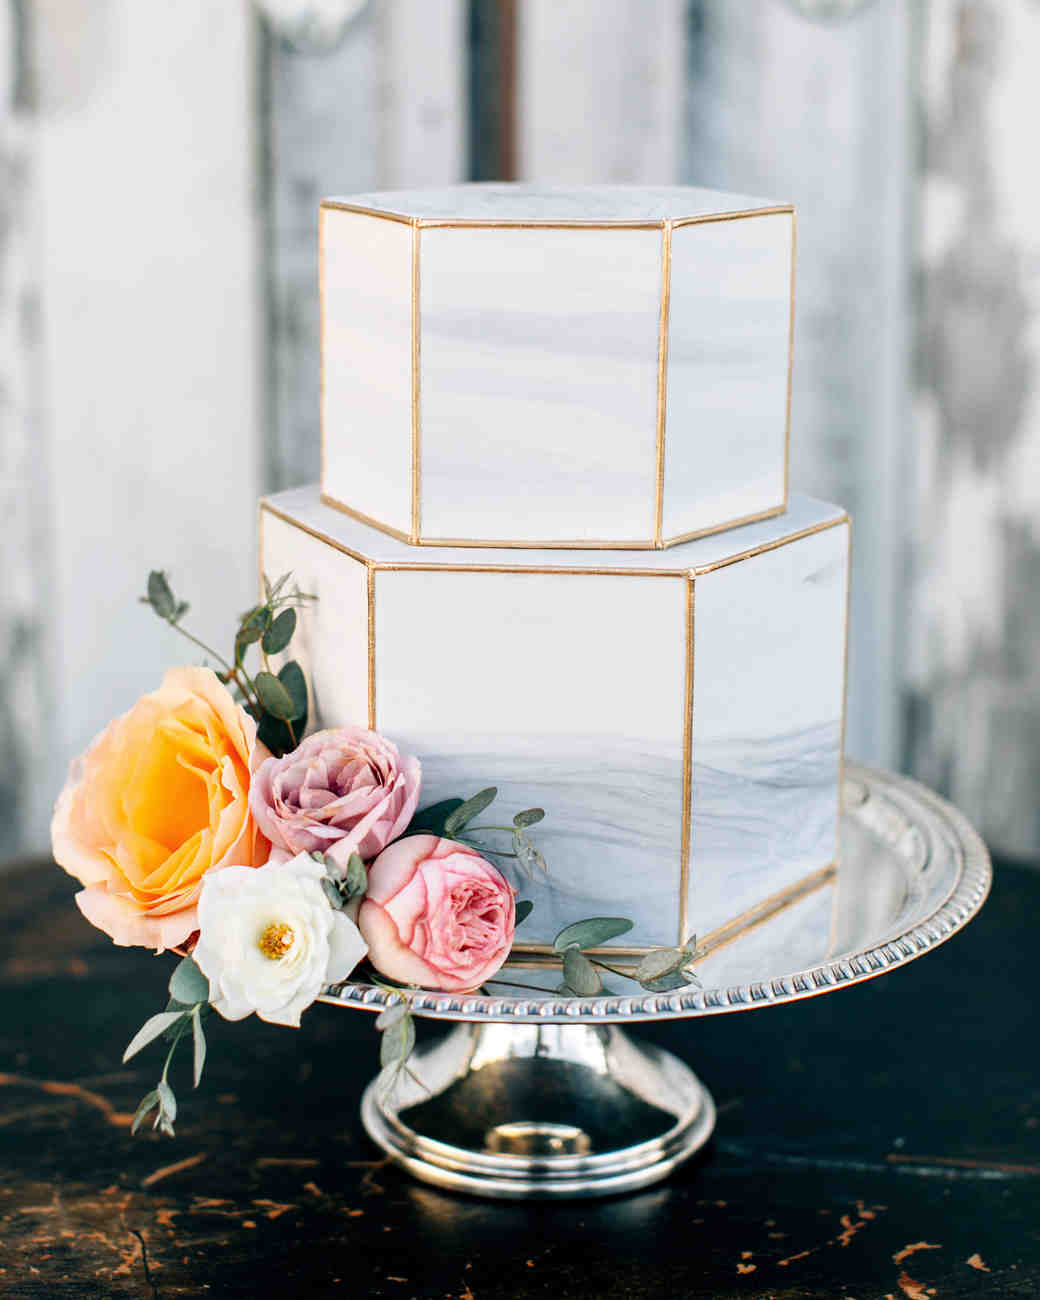 25 wedding cake design ideas thatll wow your guests martha cake designs lora grady junglespirit